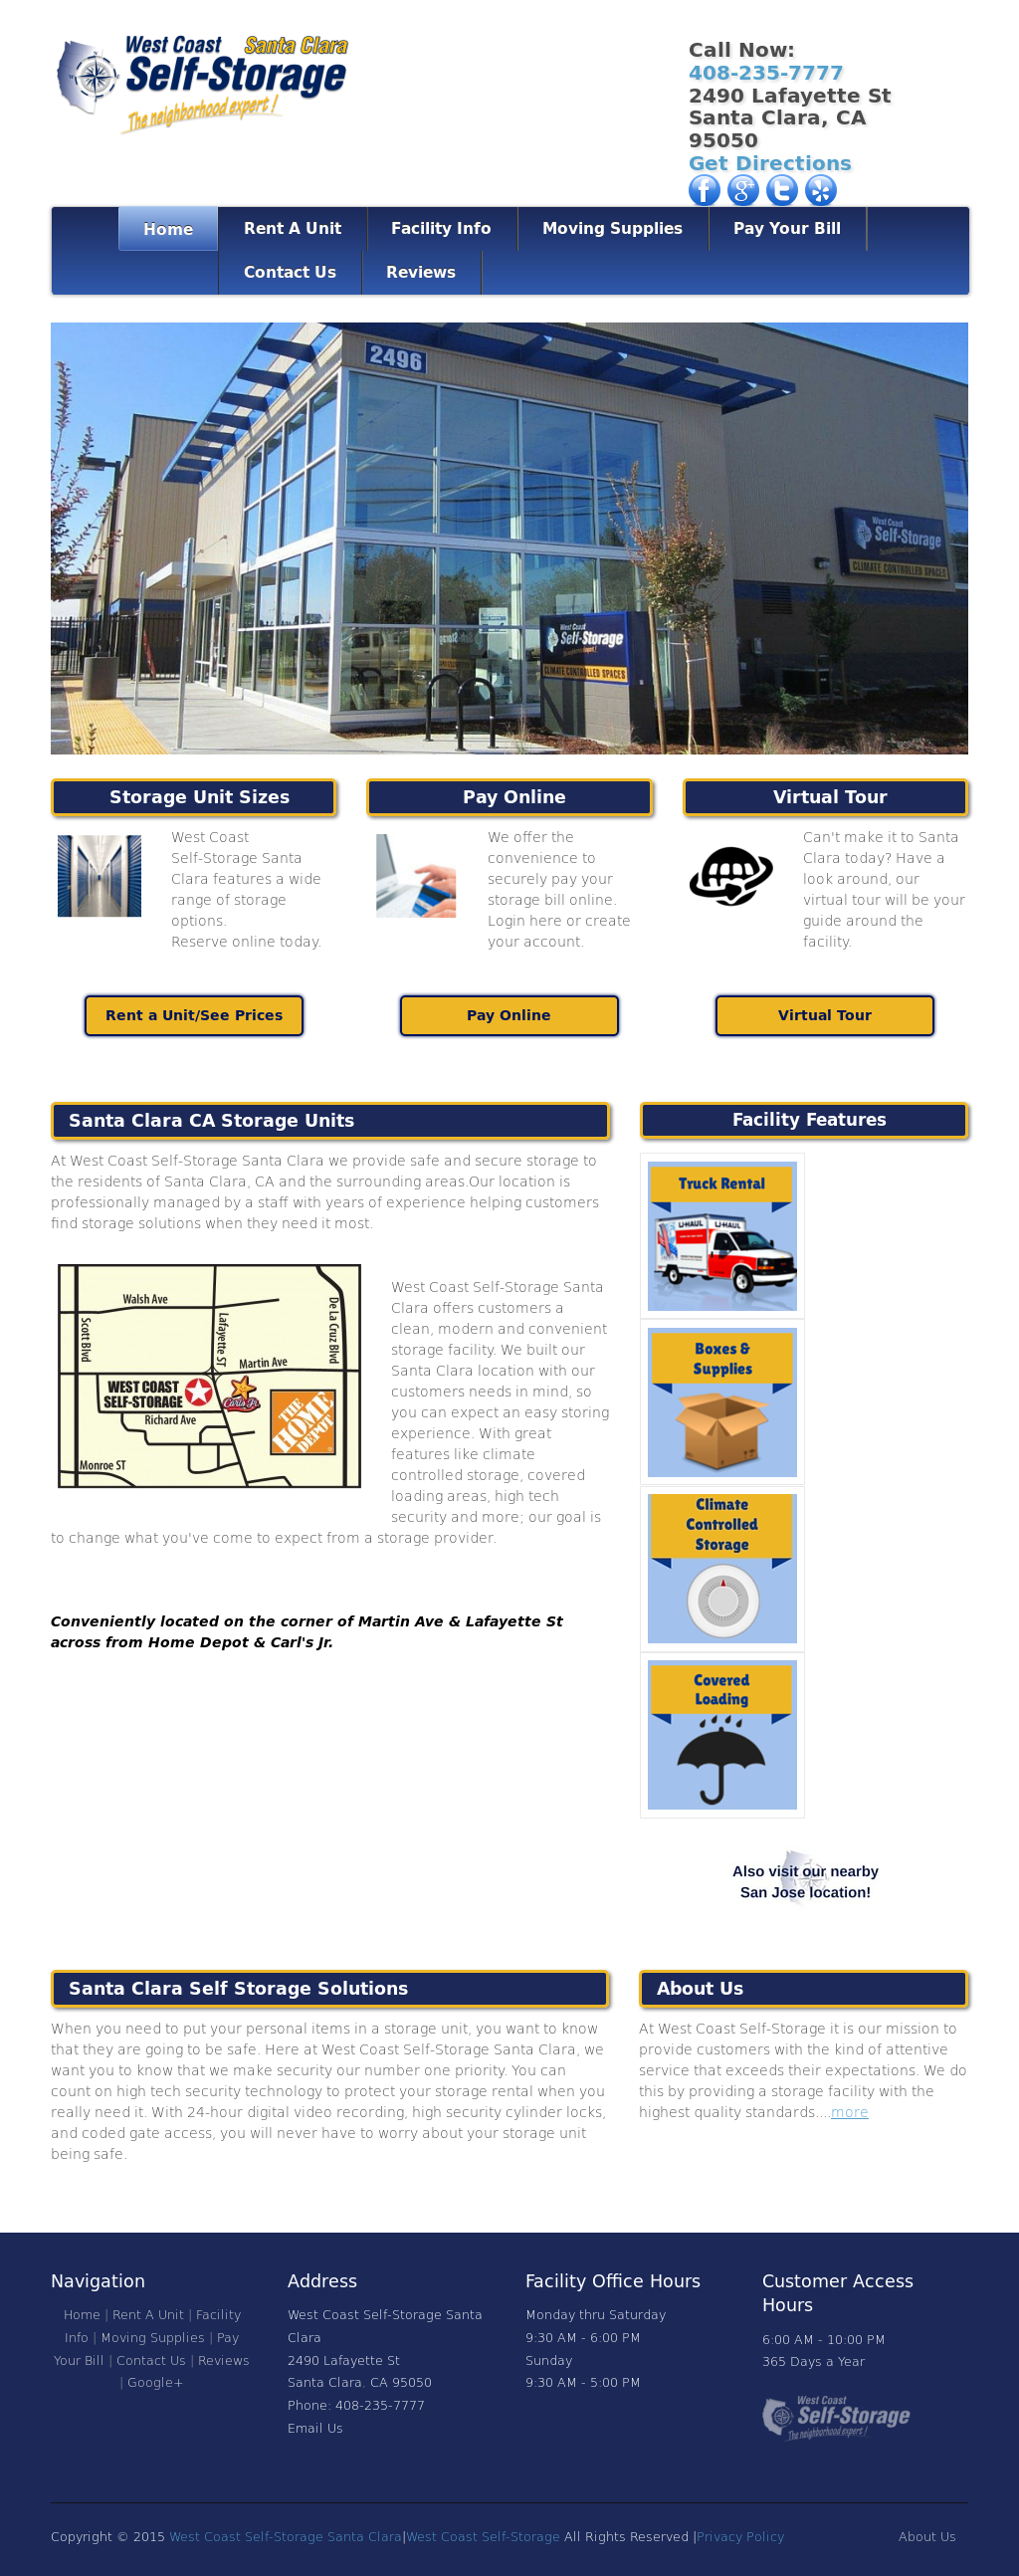 Attrayant West Coast Self Storage Santa Clara Website History